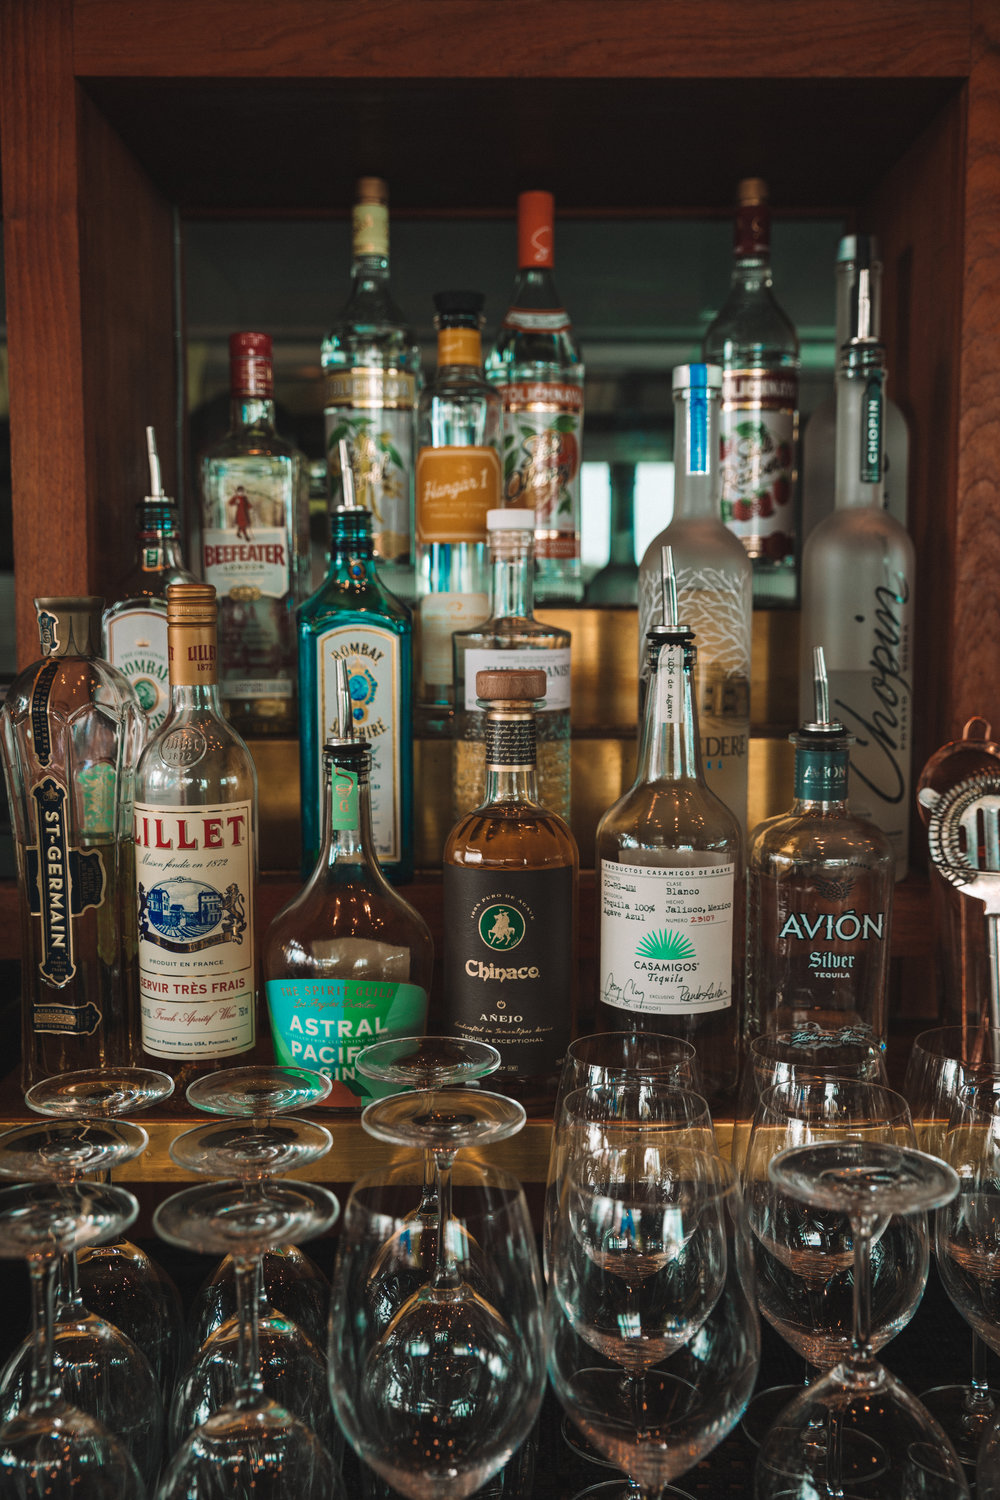 The Lobster's gin and liqueur selection